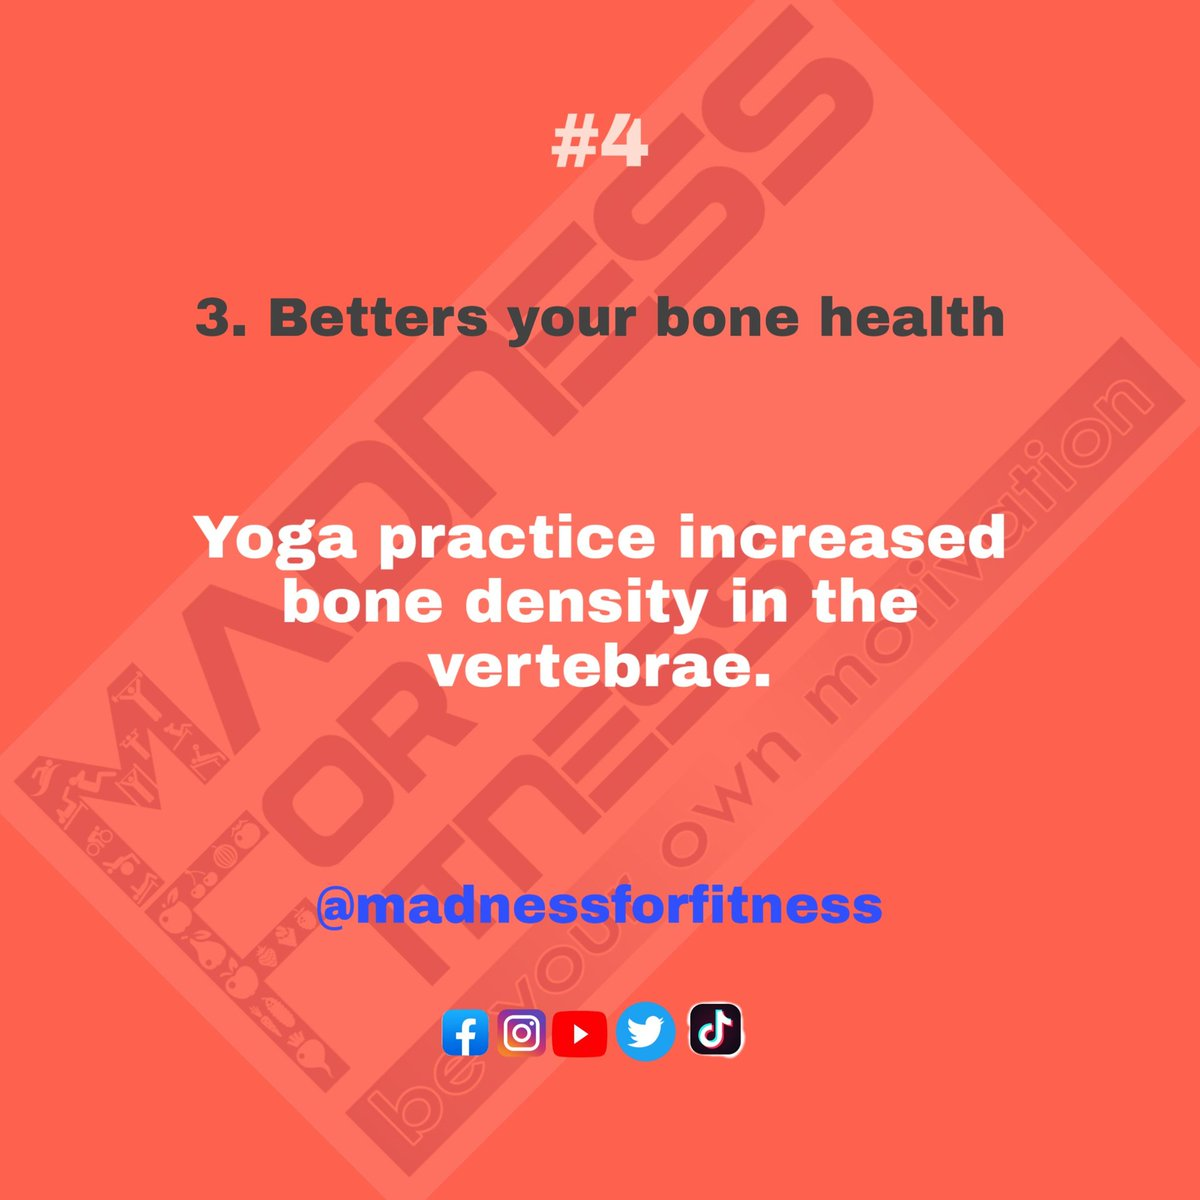 Yaha and sunshine increase your bone density....💪💪💪💪 Follow @madnessforfitness  #madnessforfitness #yoga #workout #exercise #gym #nutrition #vitamins #food #fruits #health #fitness #bone #sunshine #power #wealth #fasion #style #nevergiveup #yogasehoga